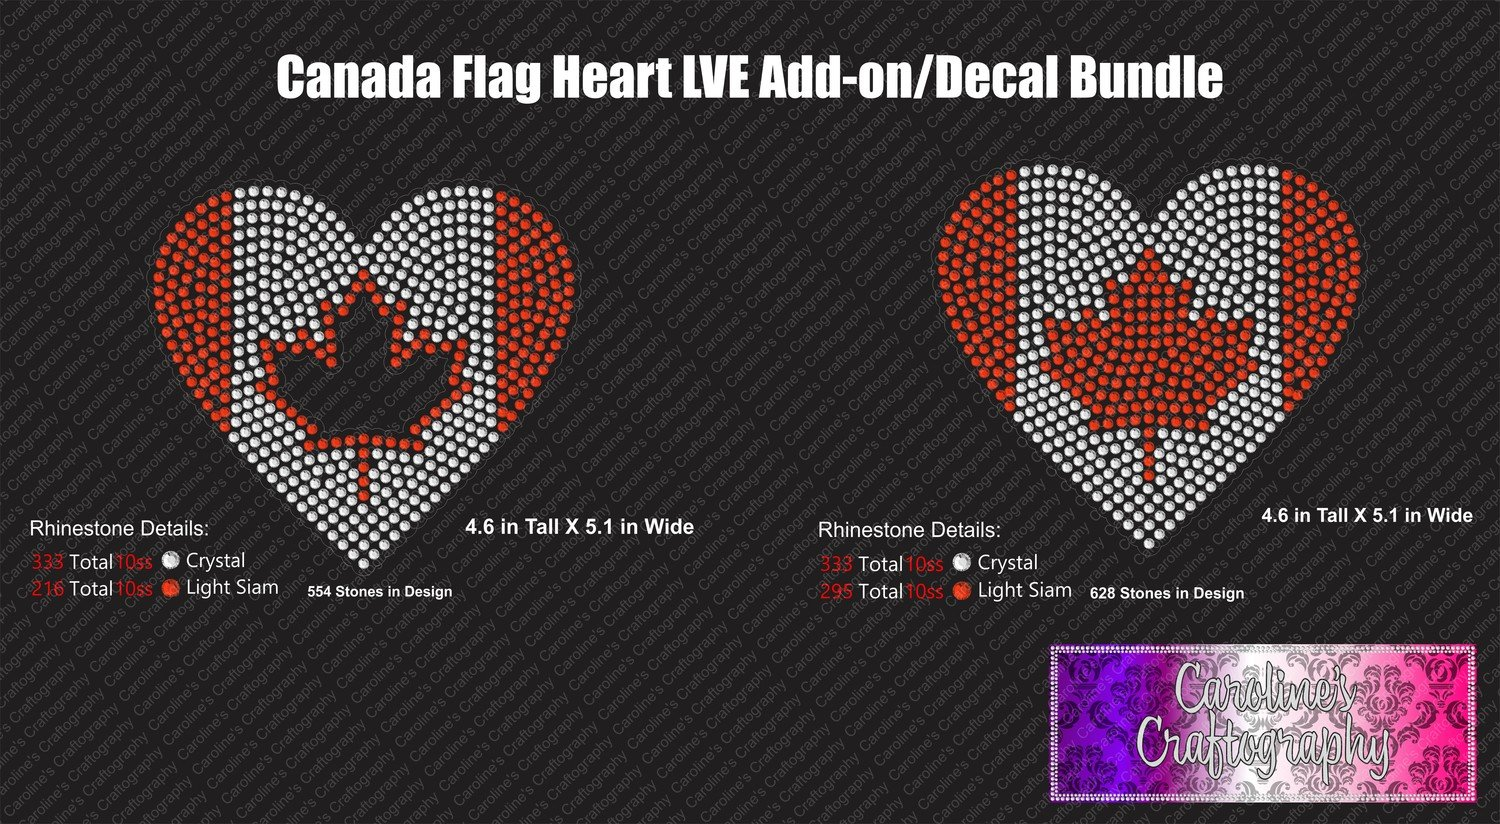 Canada Flag Decal Bundle